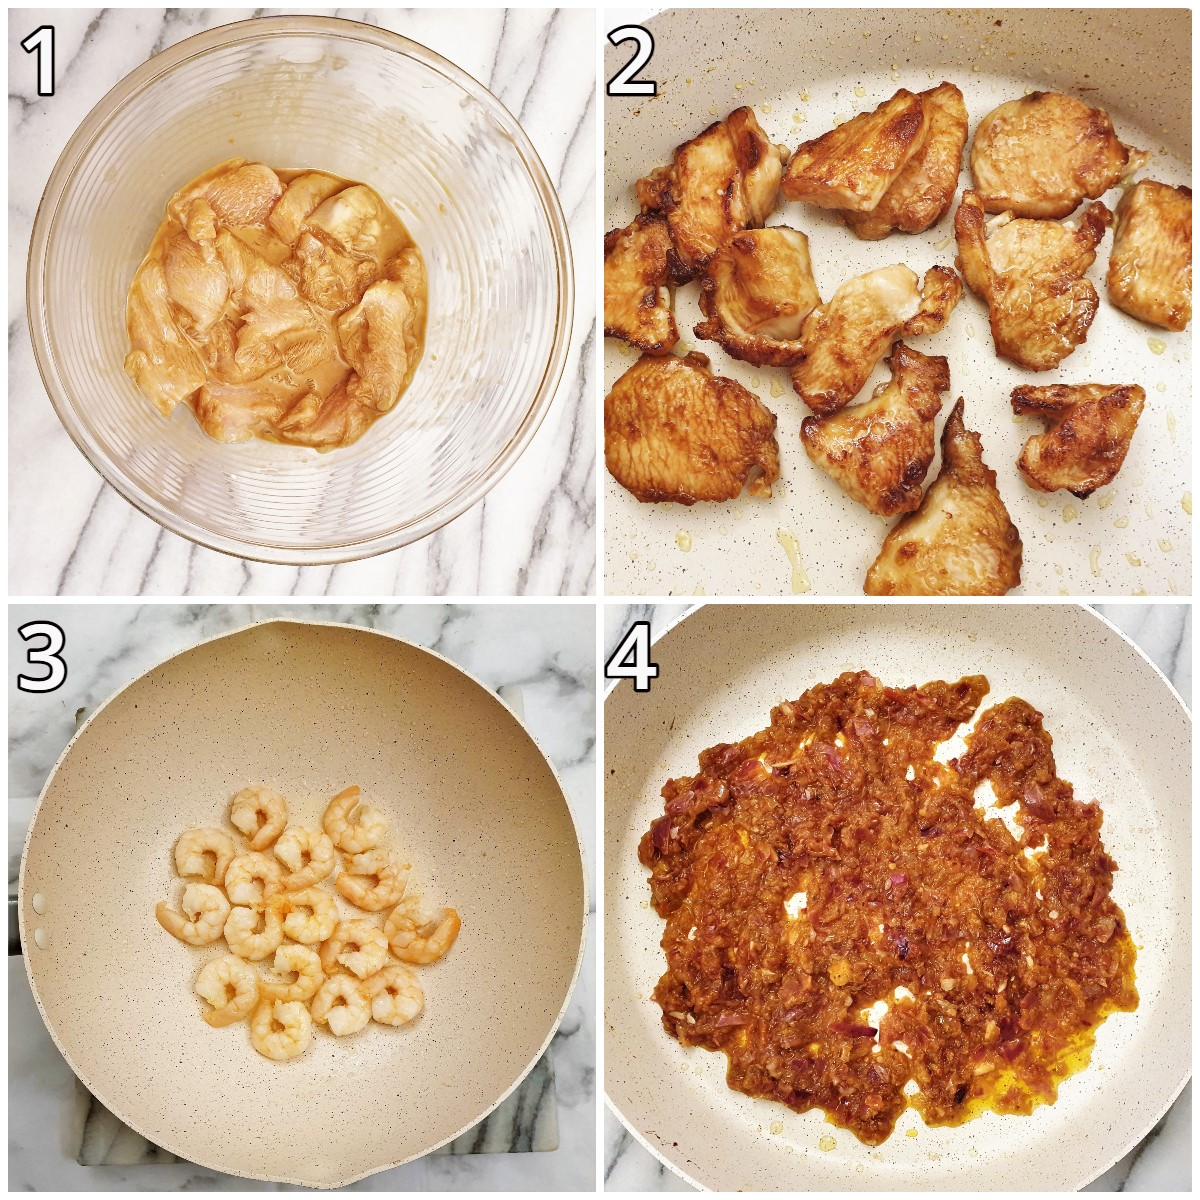 Steps for frying the chicken and prawns.